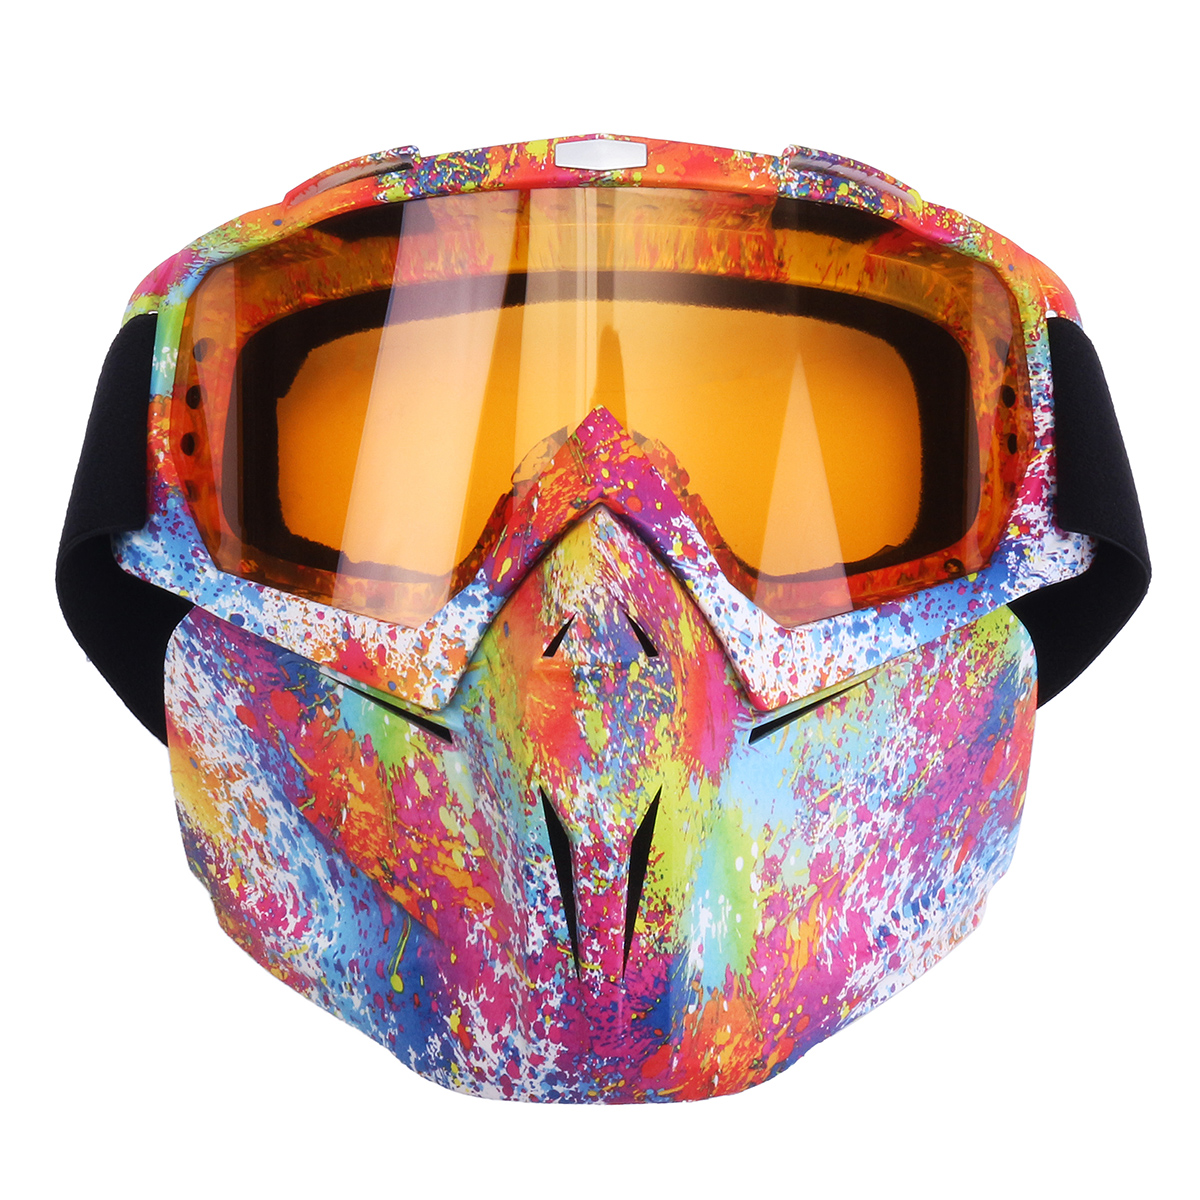 Motorcycle ATV MX Dirt Bike Riding Goggles Flexible Glasses Face Mask Protector